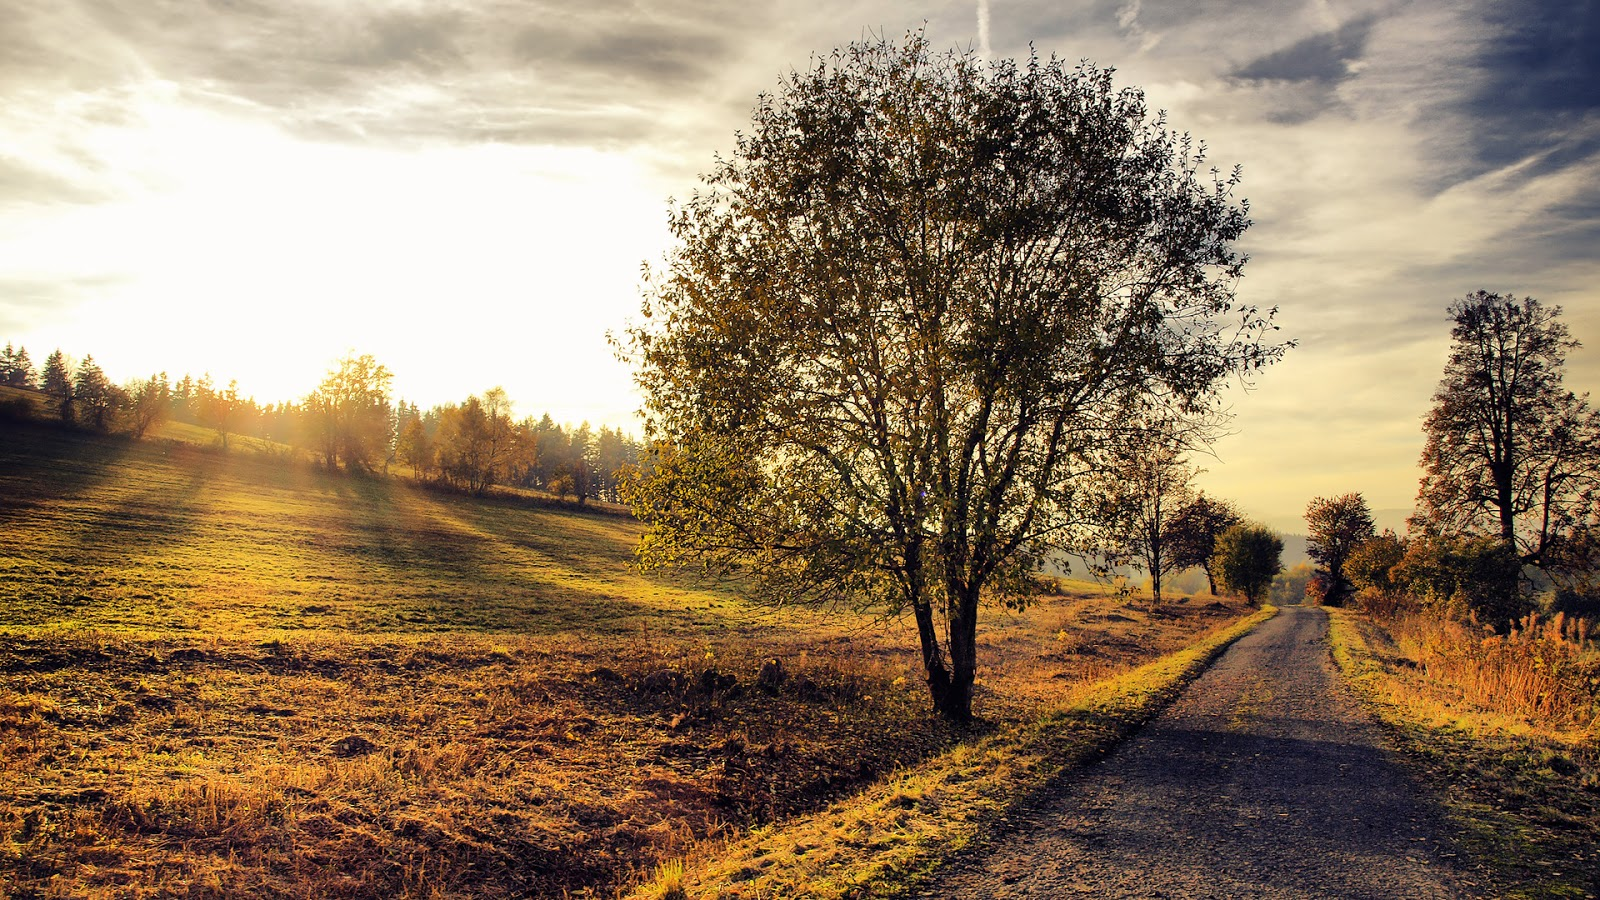 The Countryside Photography Photo Blog 1600x900